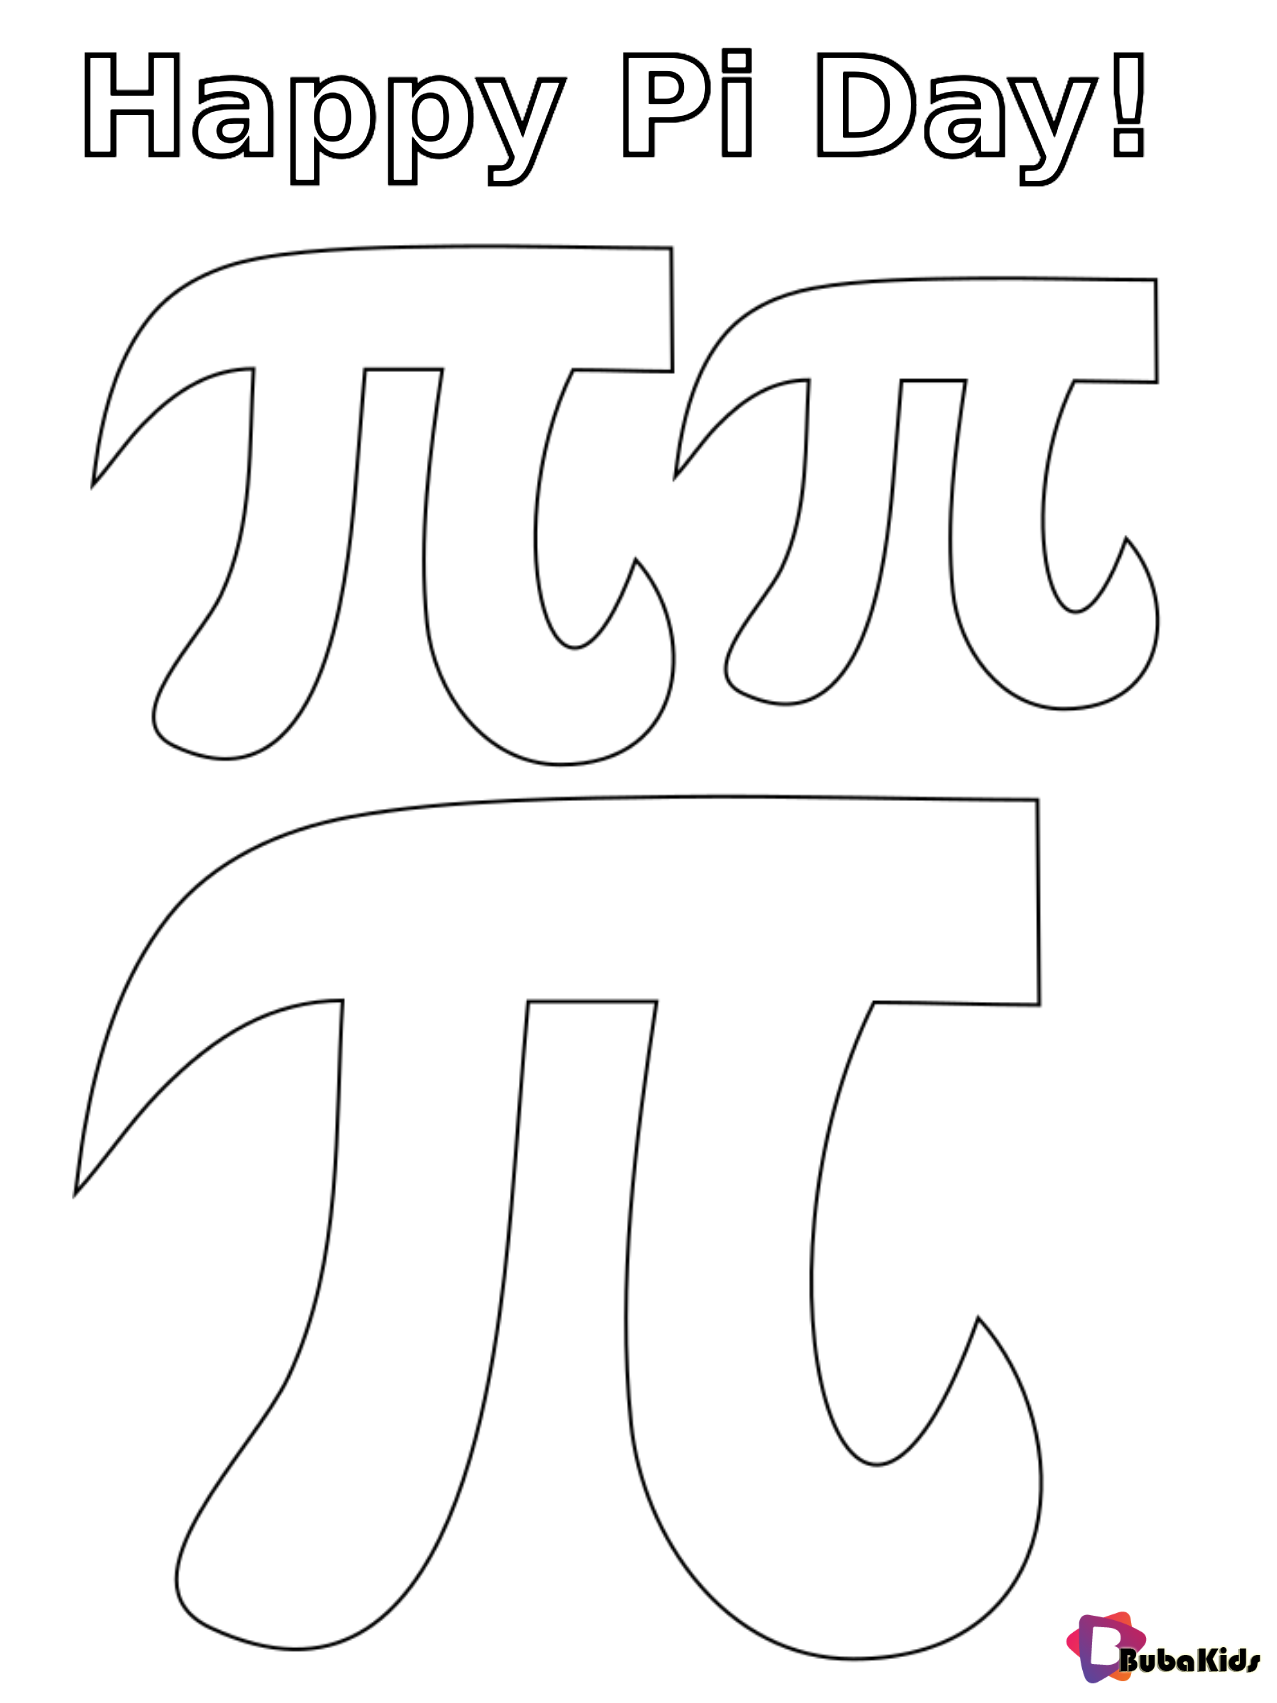 Pin By Coloring Pages Bubakids On Cartoon Coloring Pages Happy Pi Day Coloring Pages Cartoon Coloring Pages [ 1703 x 1277 Pixel ]